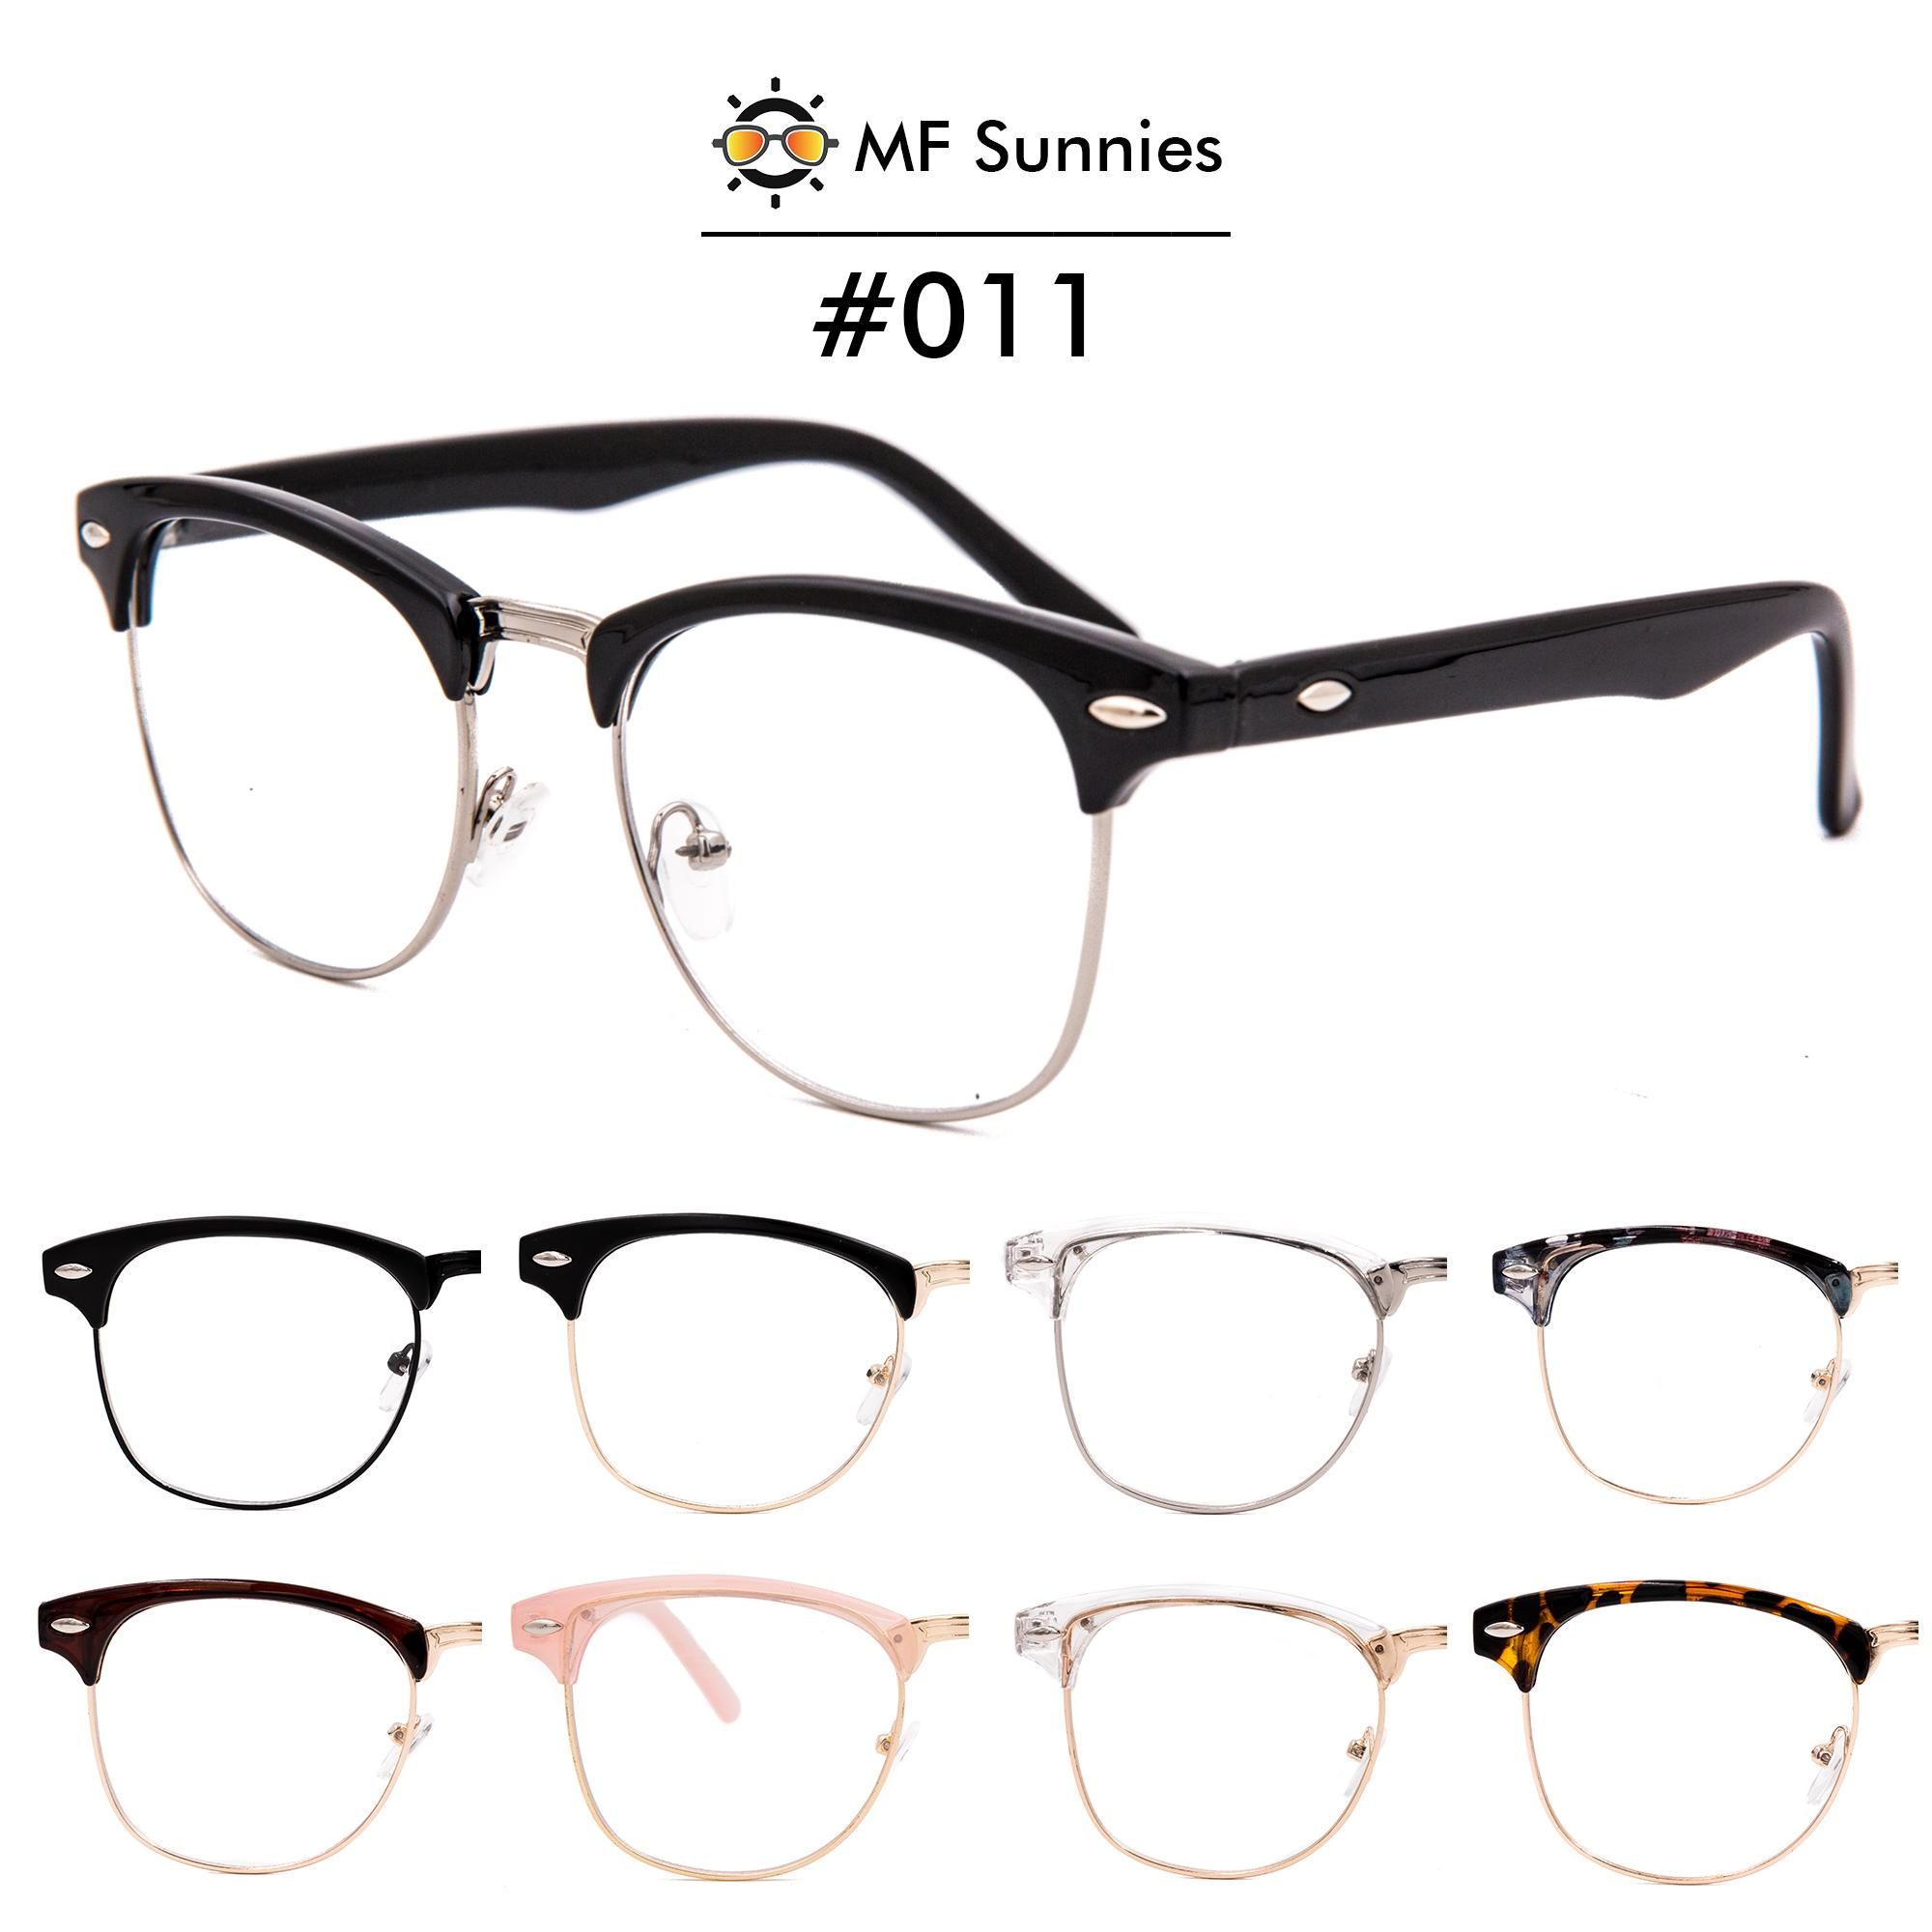 f55d0338d1 MFSunnies Clubmaster Computer Anti Radiation Blue light Classic Metal  Hinges High quality acetate frame